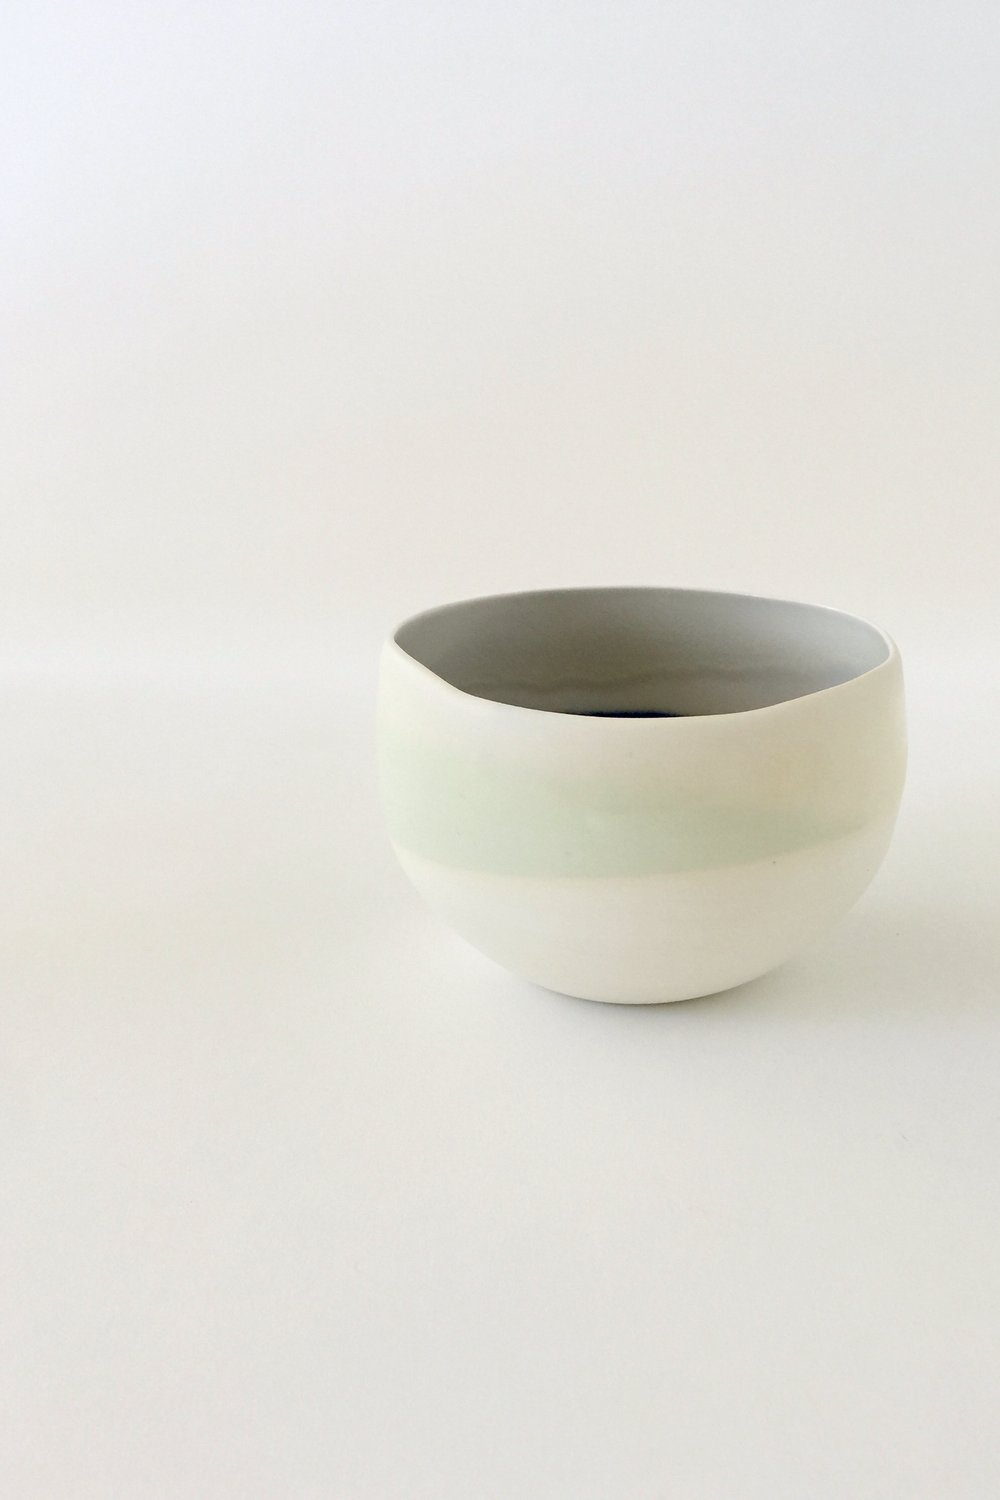 porcelain ceramic bowl in simple form & glaze by esselhaus